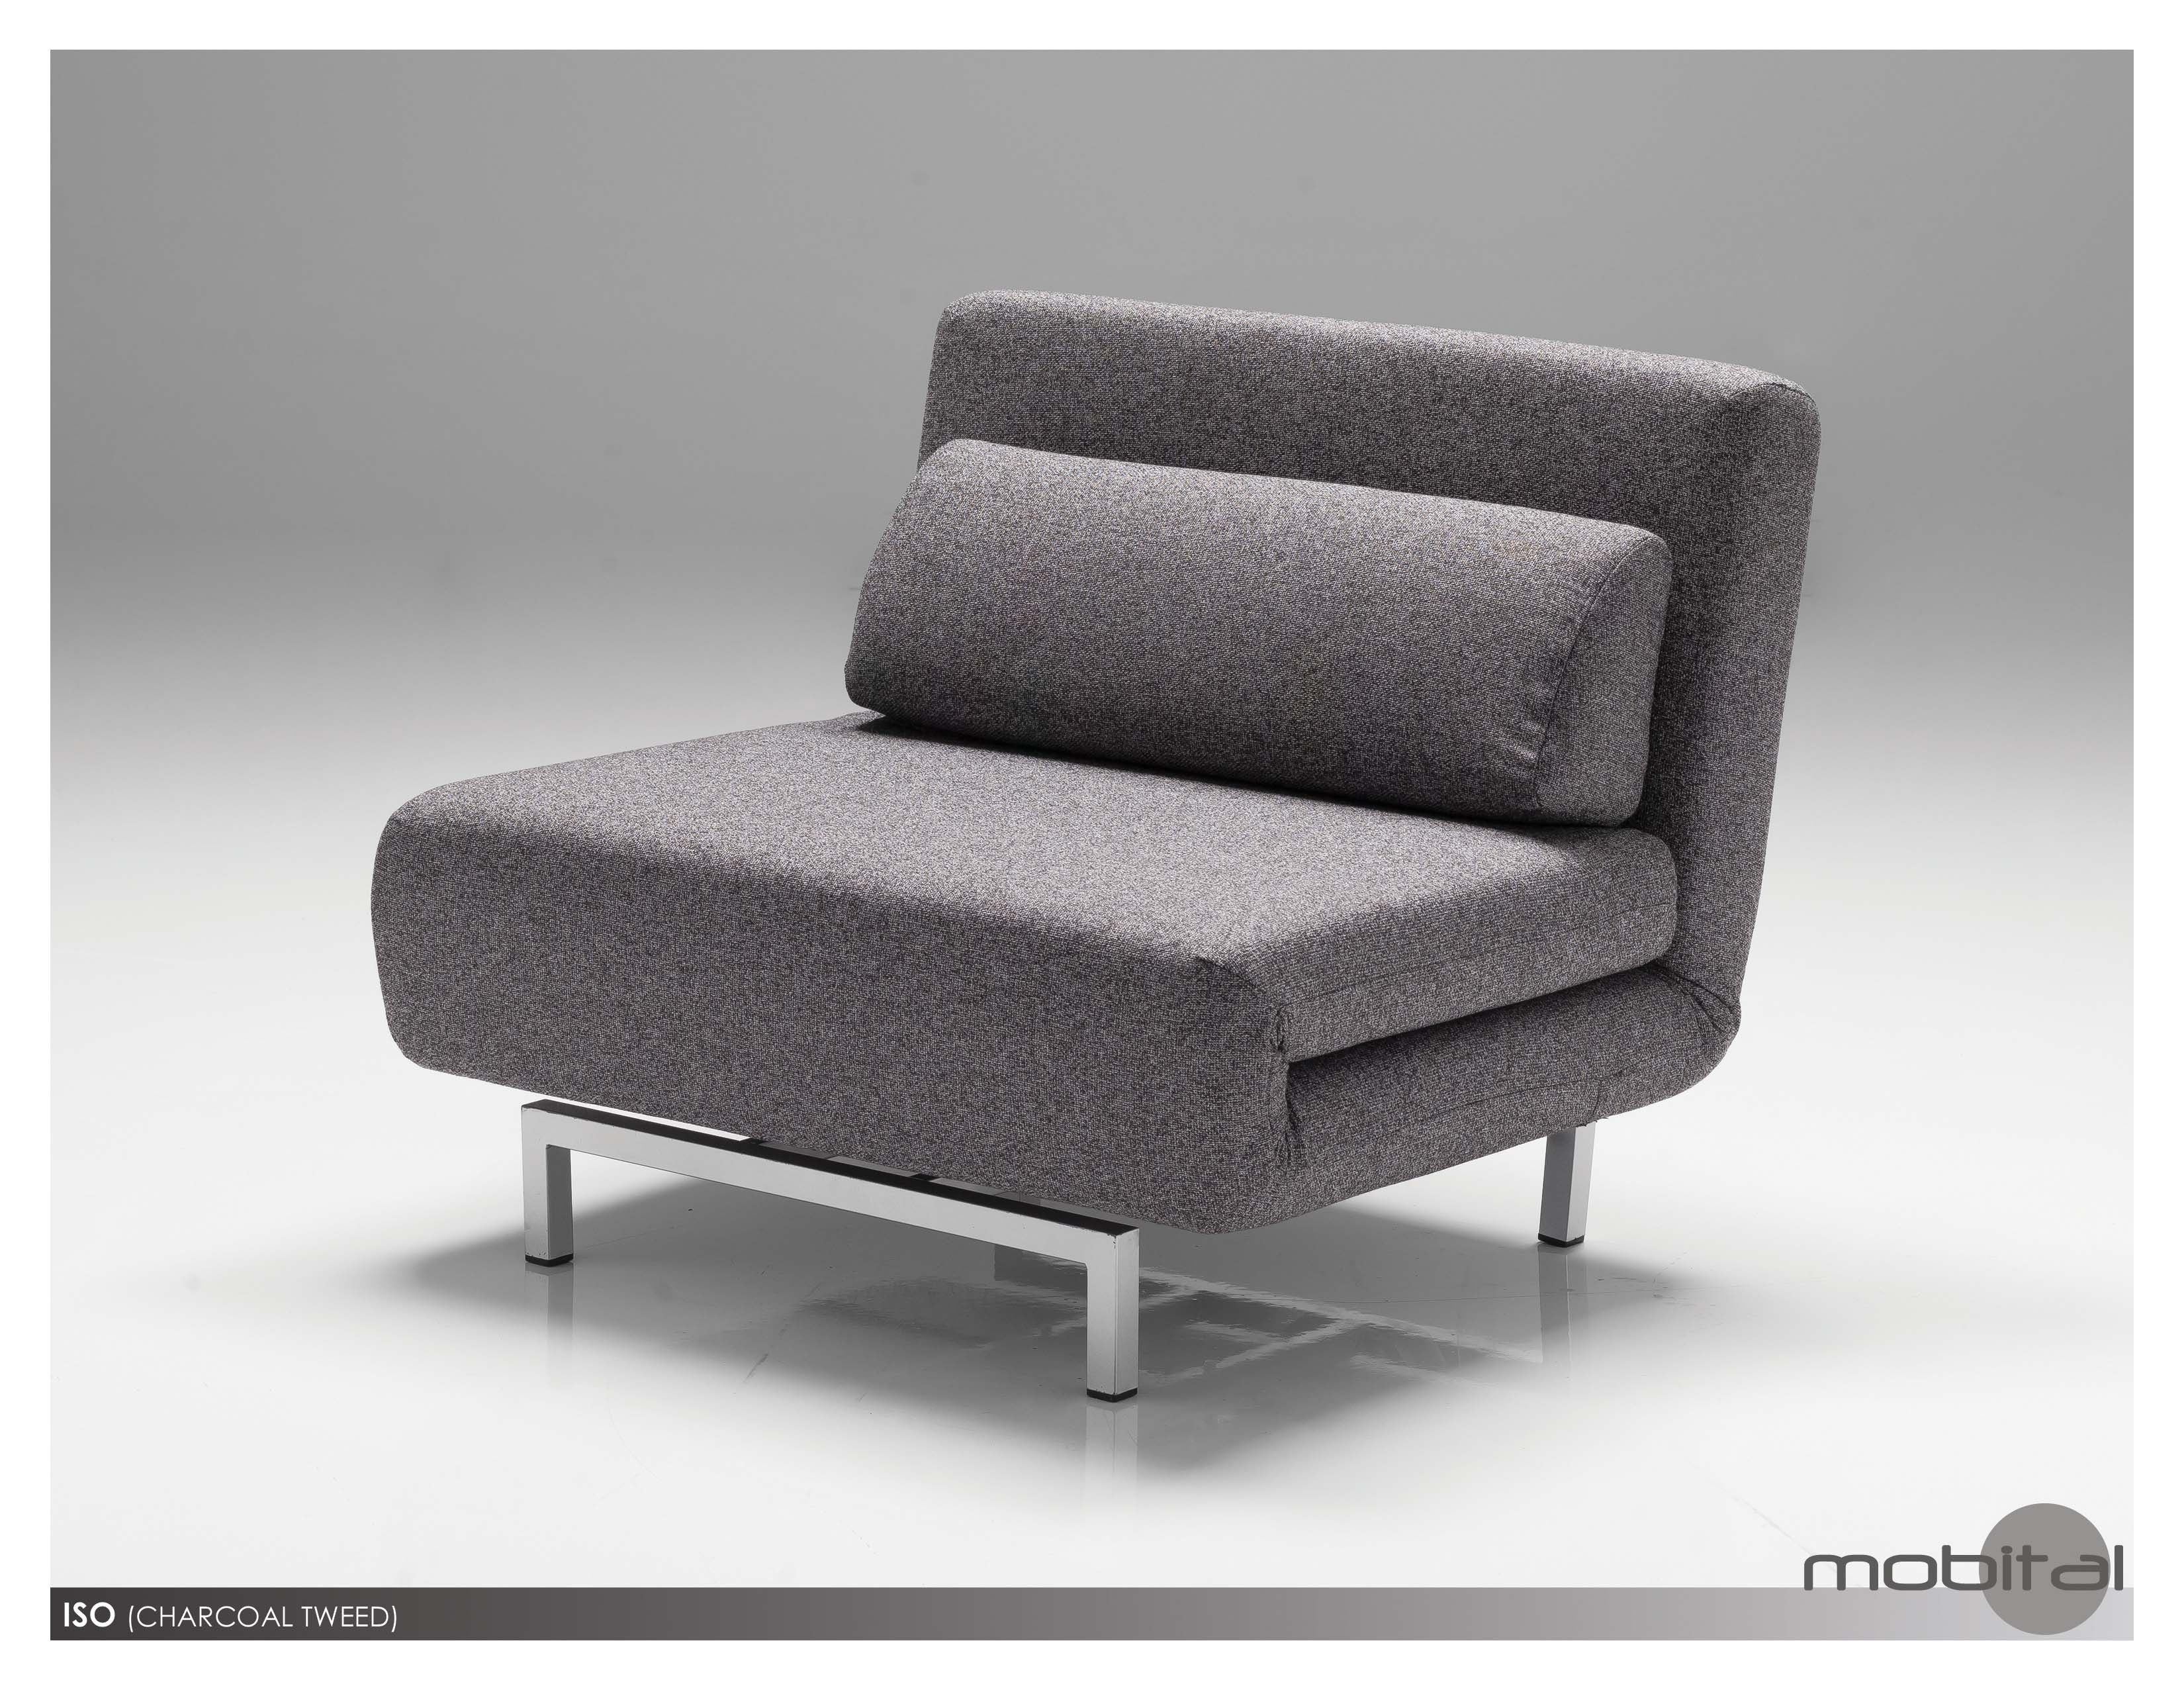 Mobital Iso Sofabed Single Modern Furnishings Throughout Single Sofa Bed Chairs (Image 5 of 15)